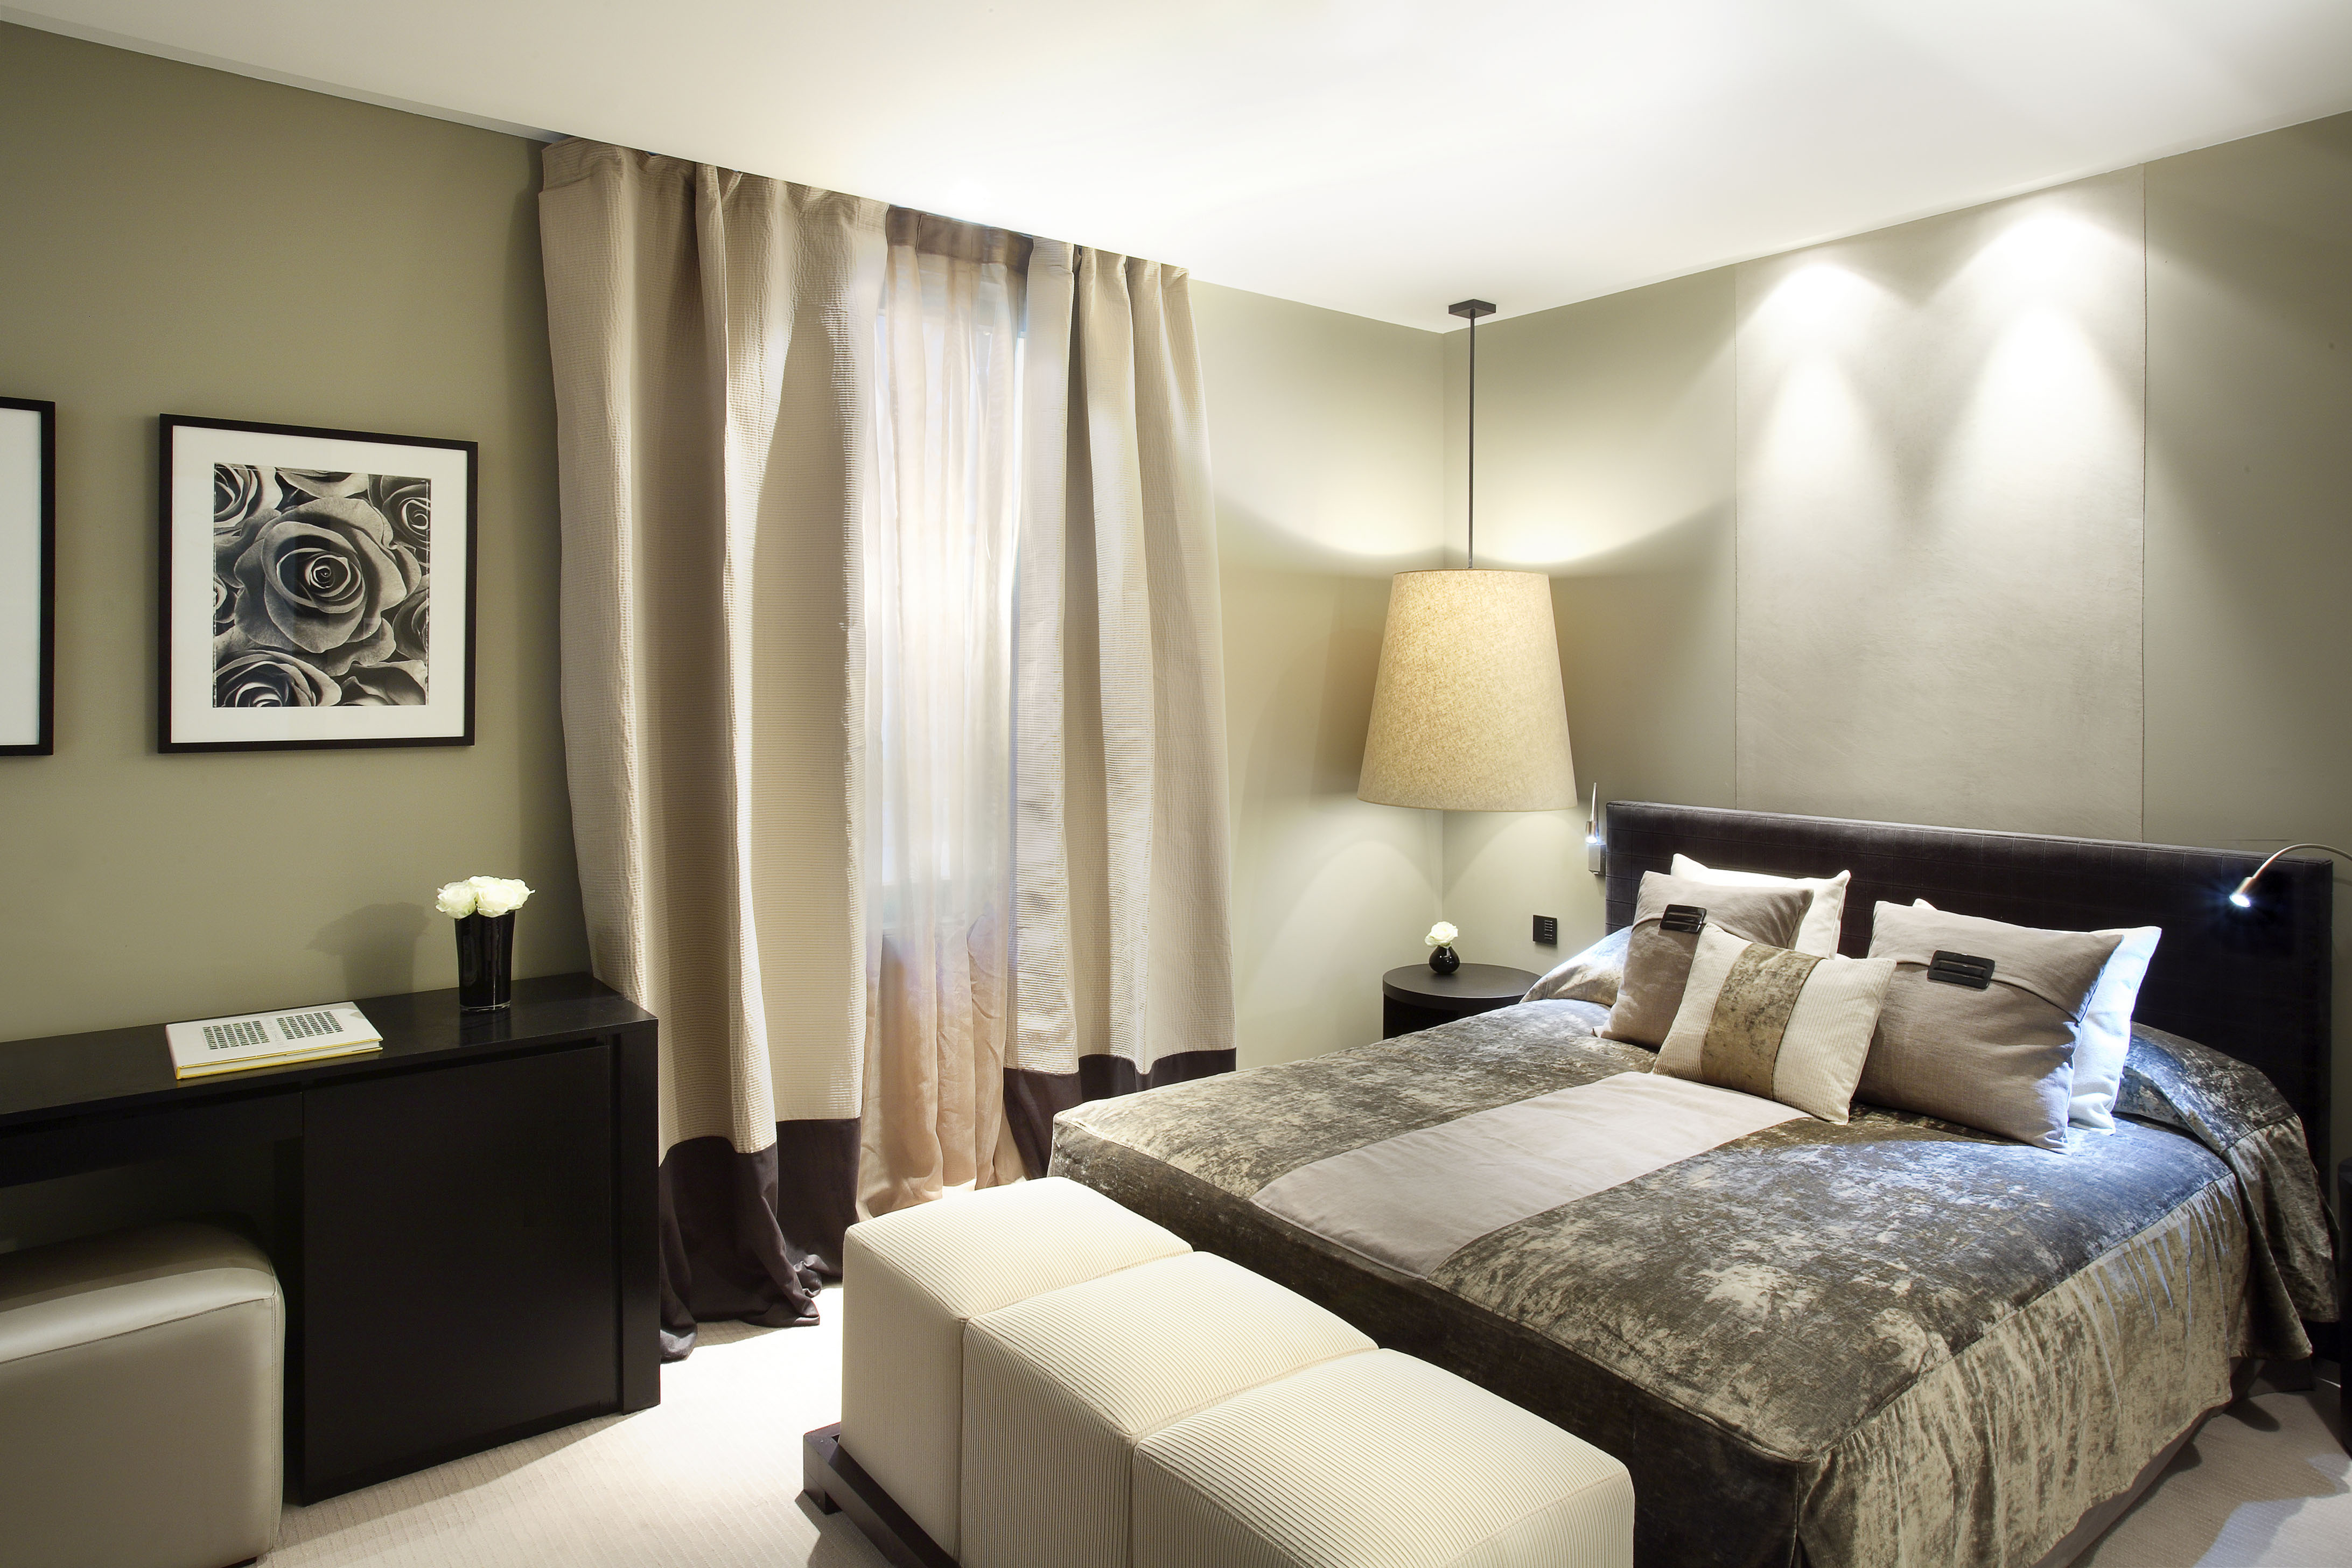 Hotel design home away from home huffpost uk for Hotel decor for home